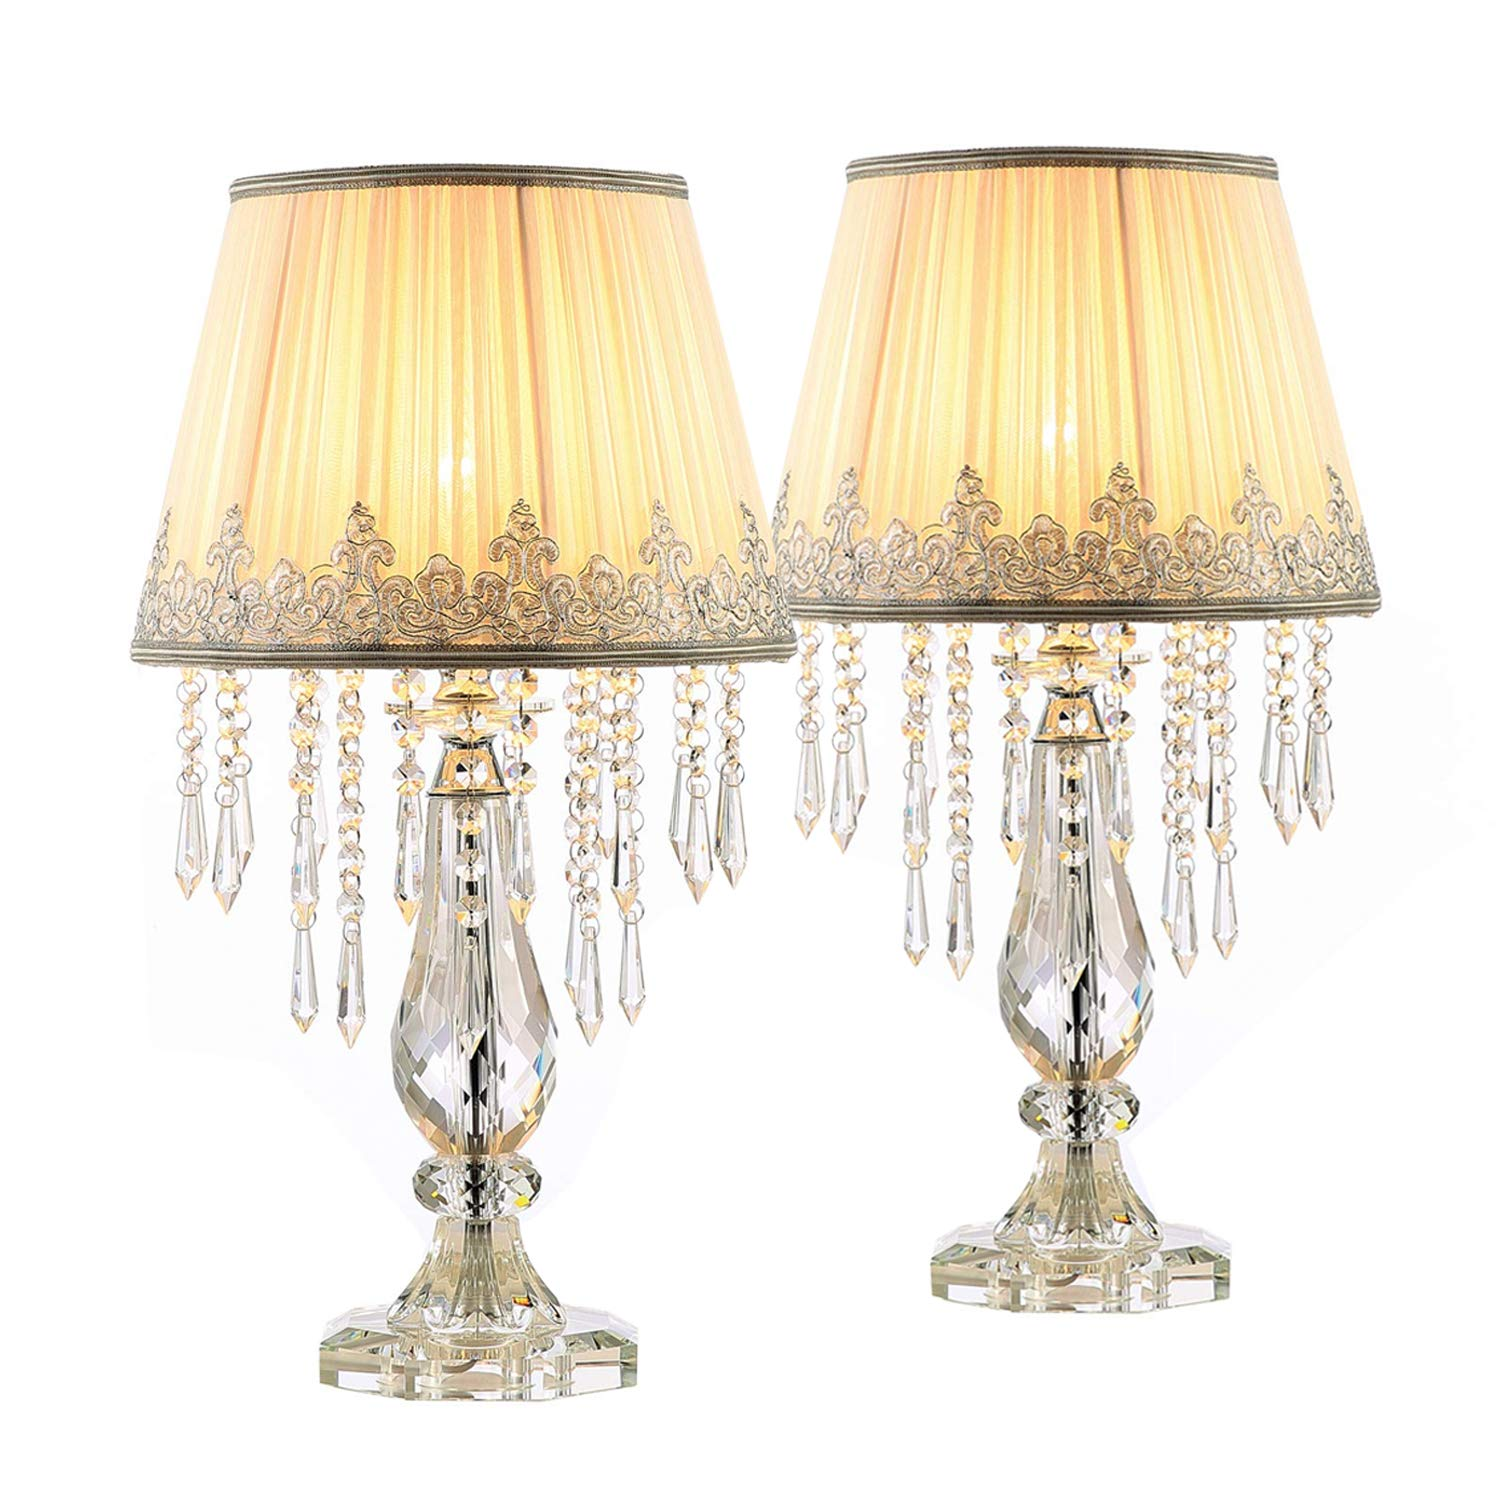 Bedside Fabric White Lamp Crystal Glam Dimmable 12 Of 2 For Set Base Moooni Two W Bedroom Room Ruched Desk Living Table Lamps 8 vw80ymnNO